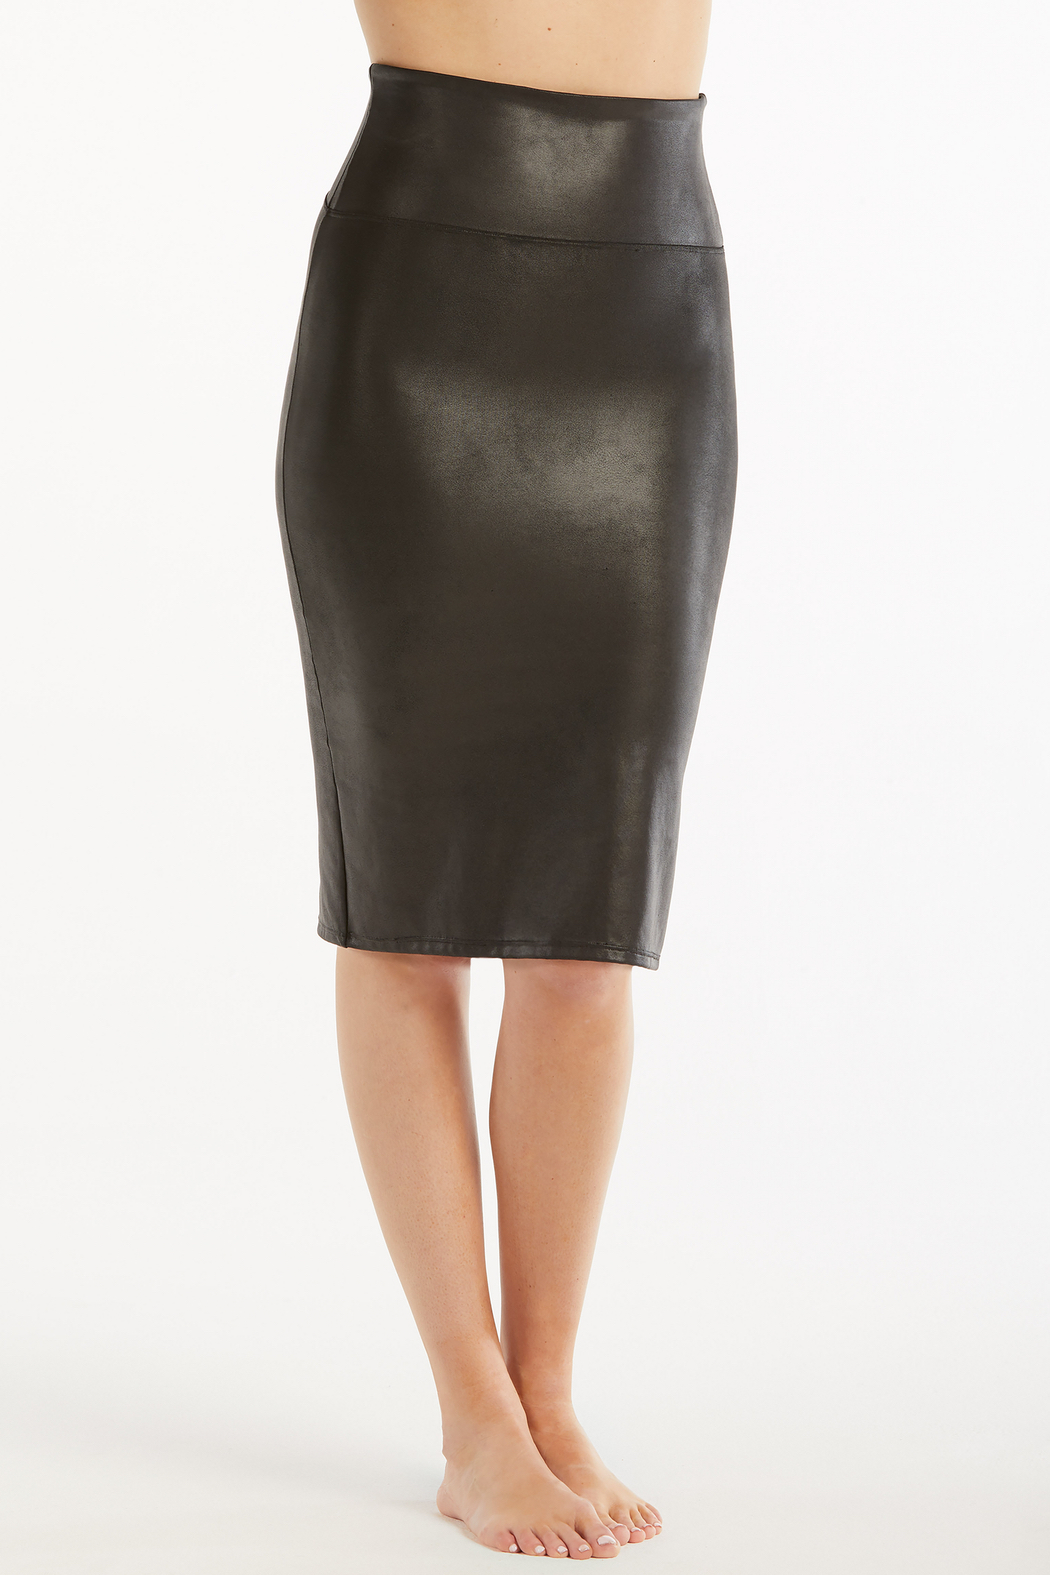 Spanx Faux Leather Pencil Skirt - Side Cropped Image